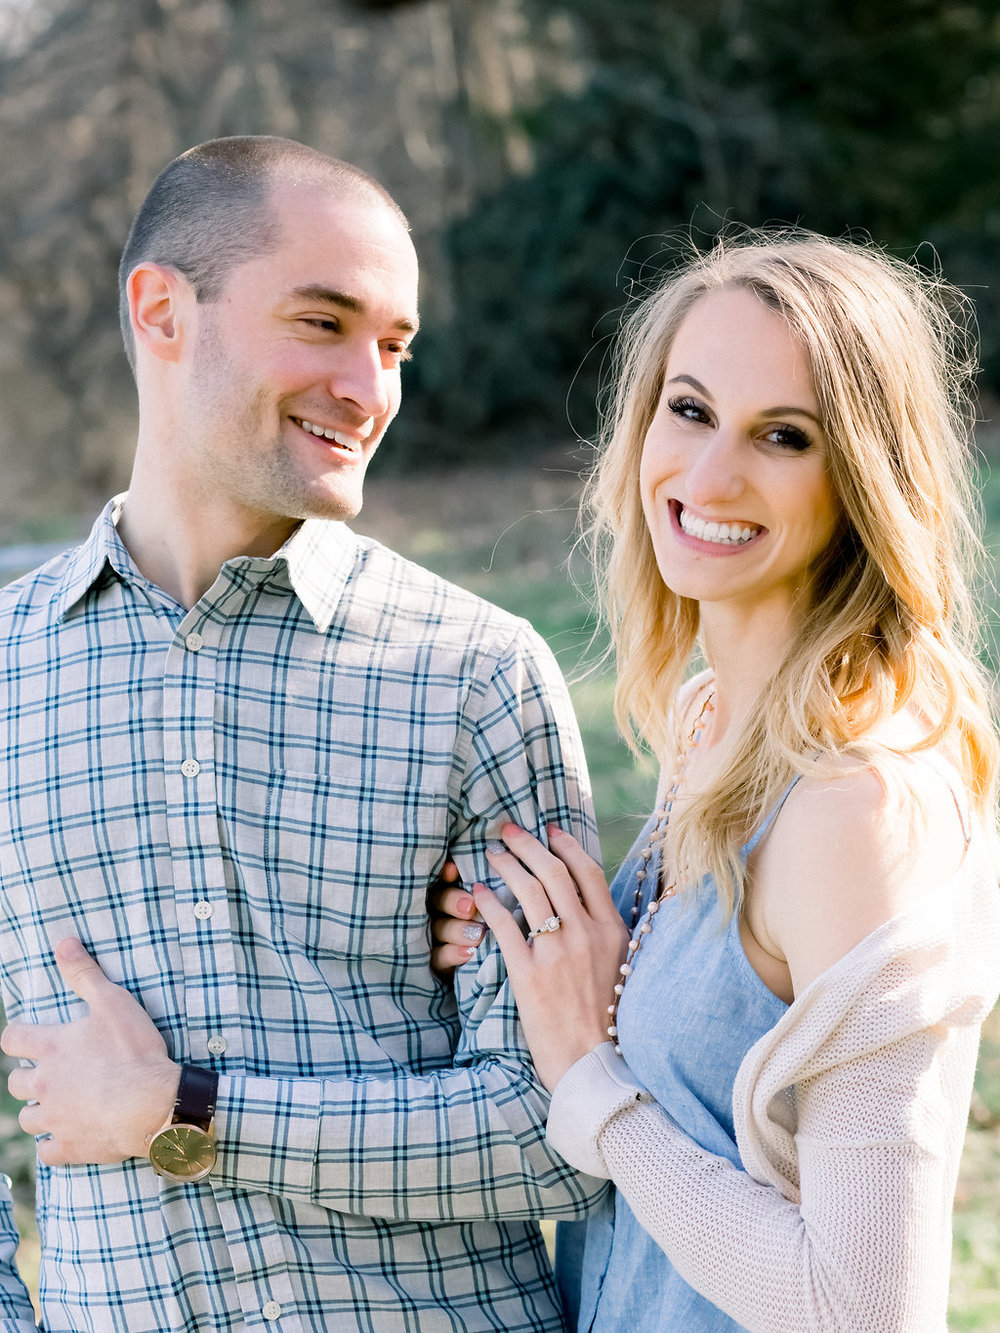 katie_graham_photography_engagement_photography_wedding_photography_jamestown_new_york_bemus_point_long_point_state_park_cathryn_smeltzer_kyle_griffith